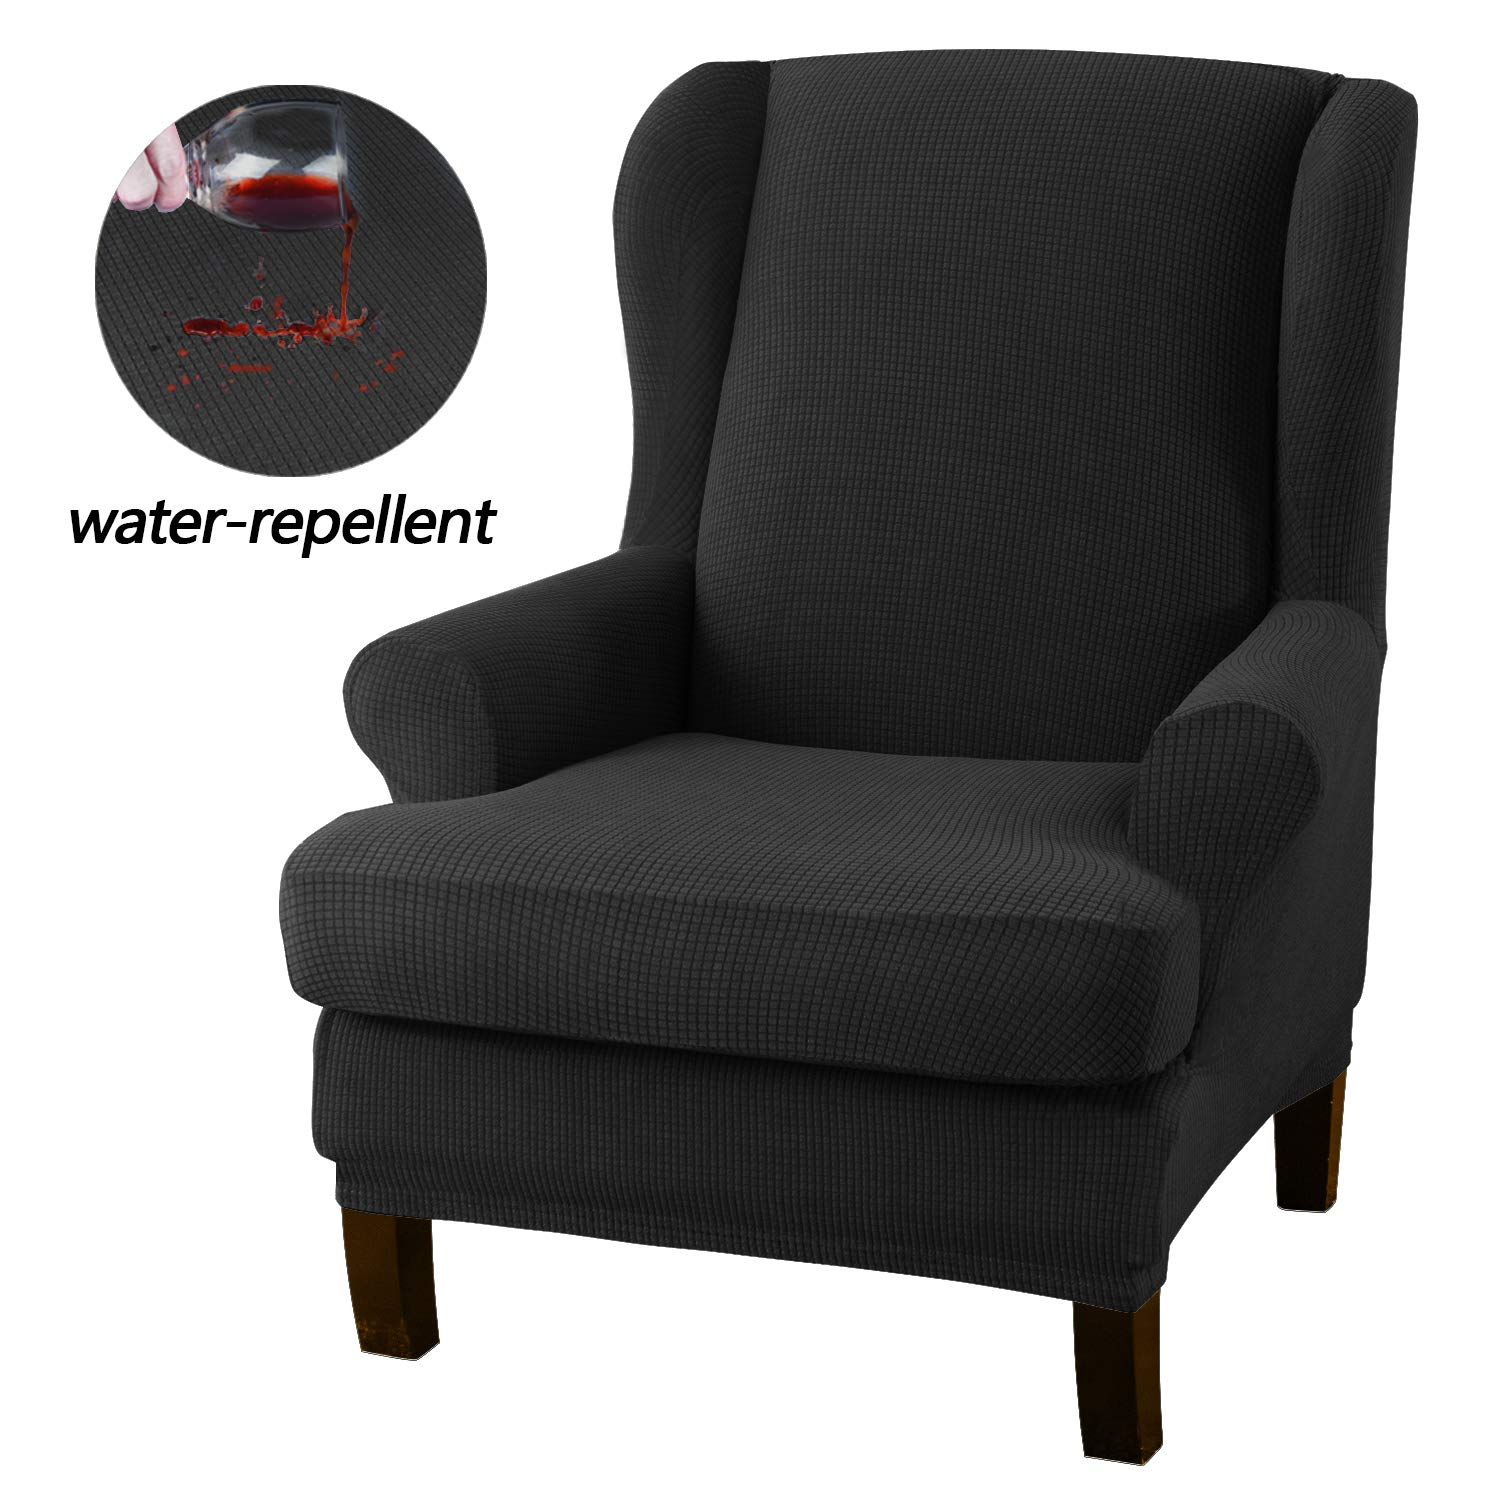 Granbest Premium Water Repellent Wingback Chair Cover 2-Piece High Stretch Jacquard Fabric Wing Back Chair Slipcovers (Wing Chair Cover, Black)